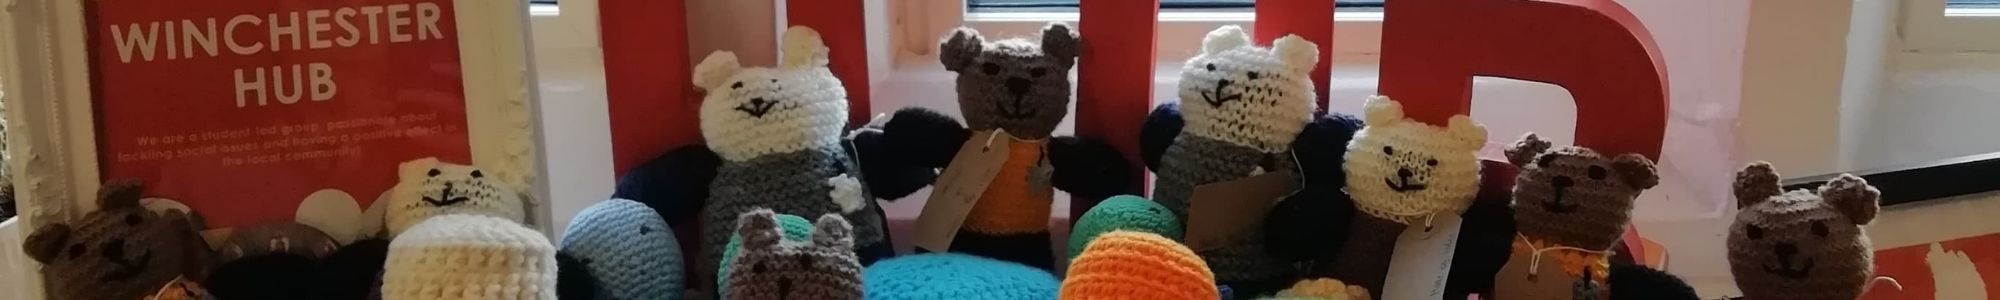 """A group of knitted teddy bears to be donated to the police. To the left is a frame with the white text """"WINCHESTER HUB"""" inside."""